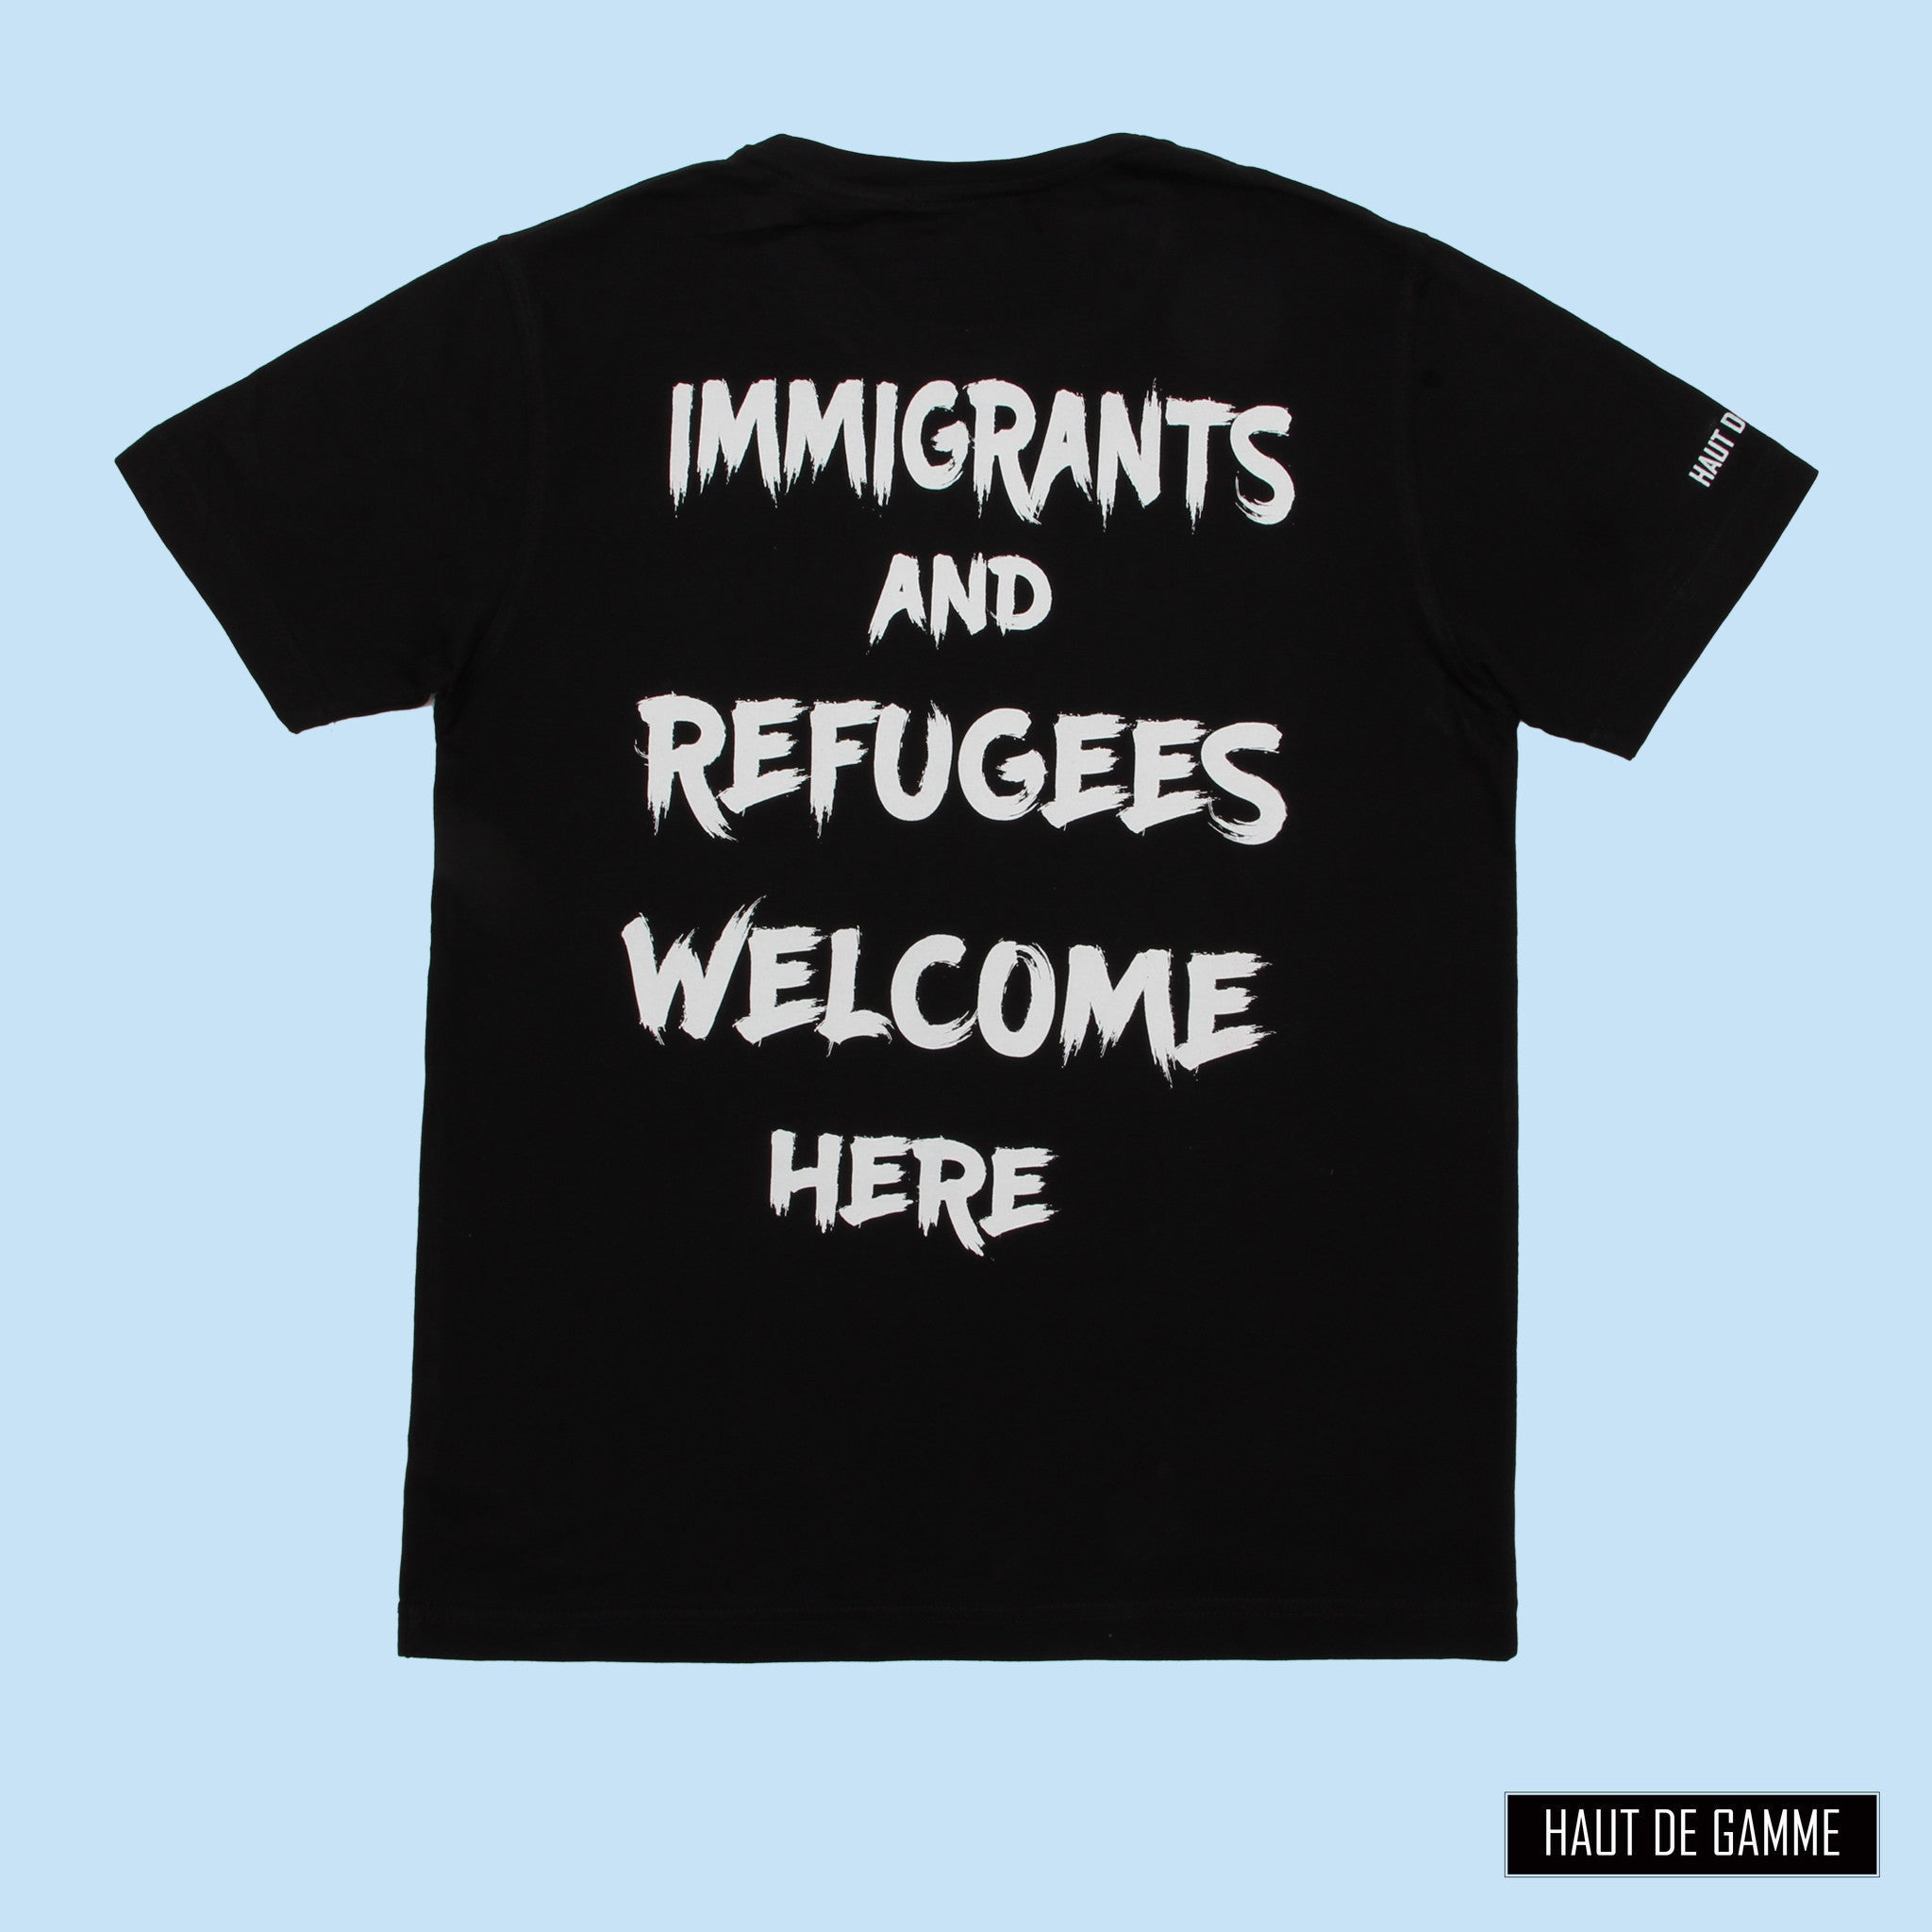 Immigrants & Refugees x Season 2